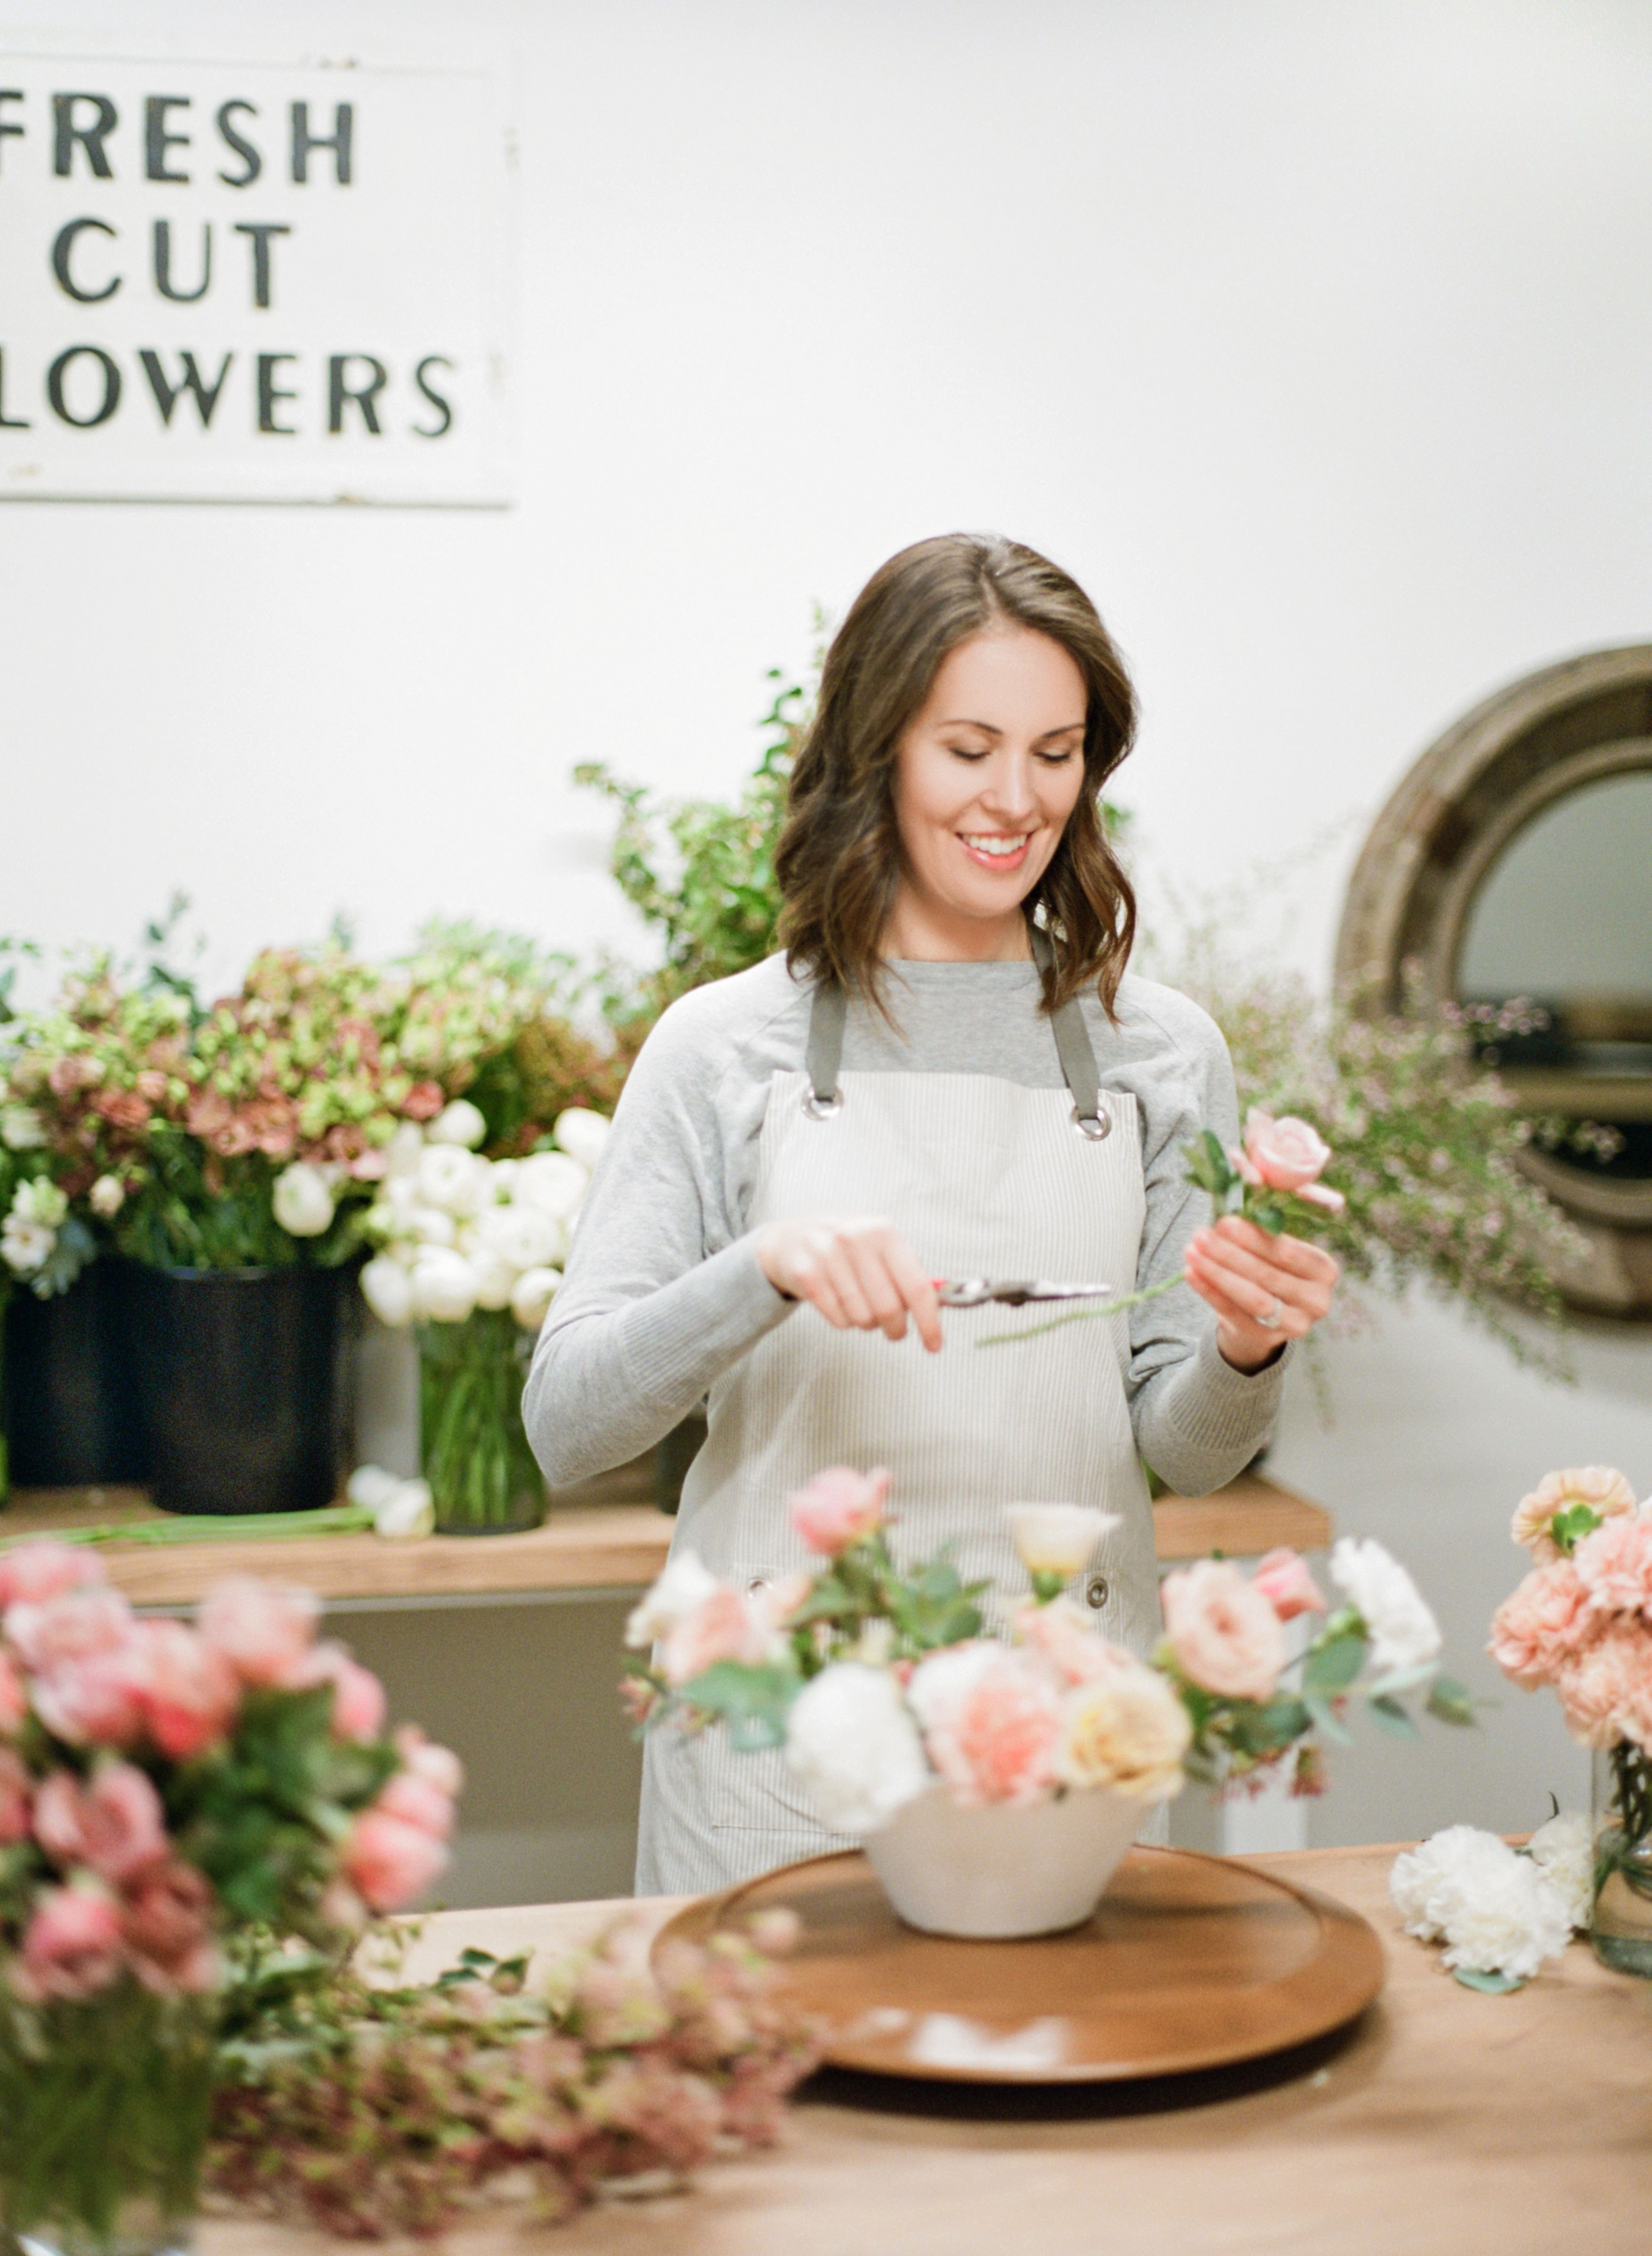 Branding Bio Session A Florist Petal And Posy By Tetiana Photography Florist Brand Brand Photography Inspiration Flower Shop Design